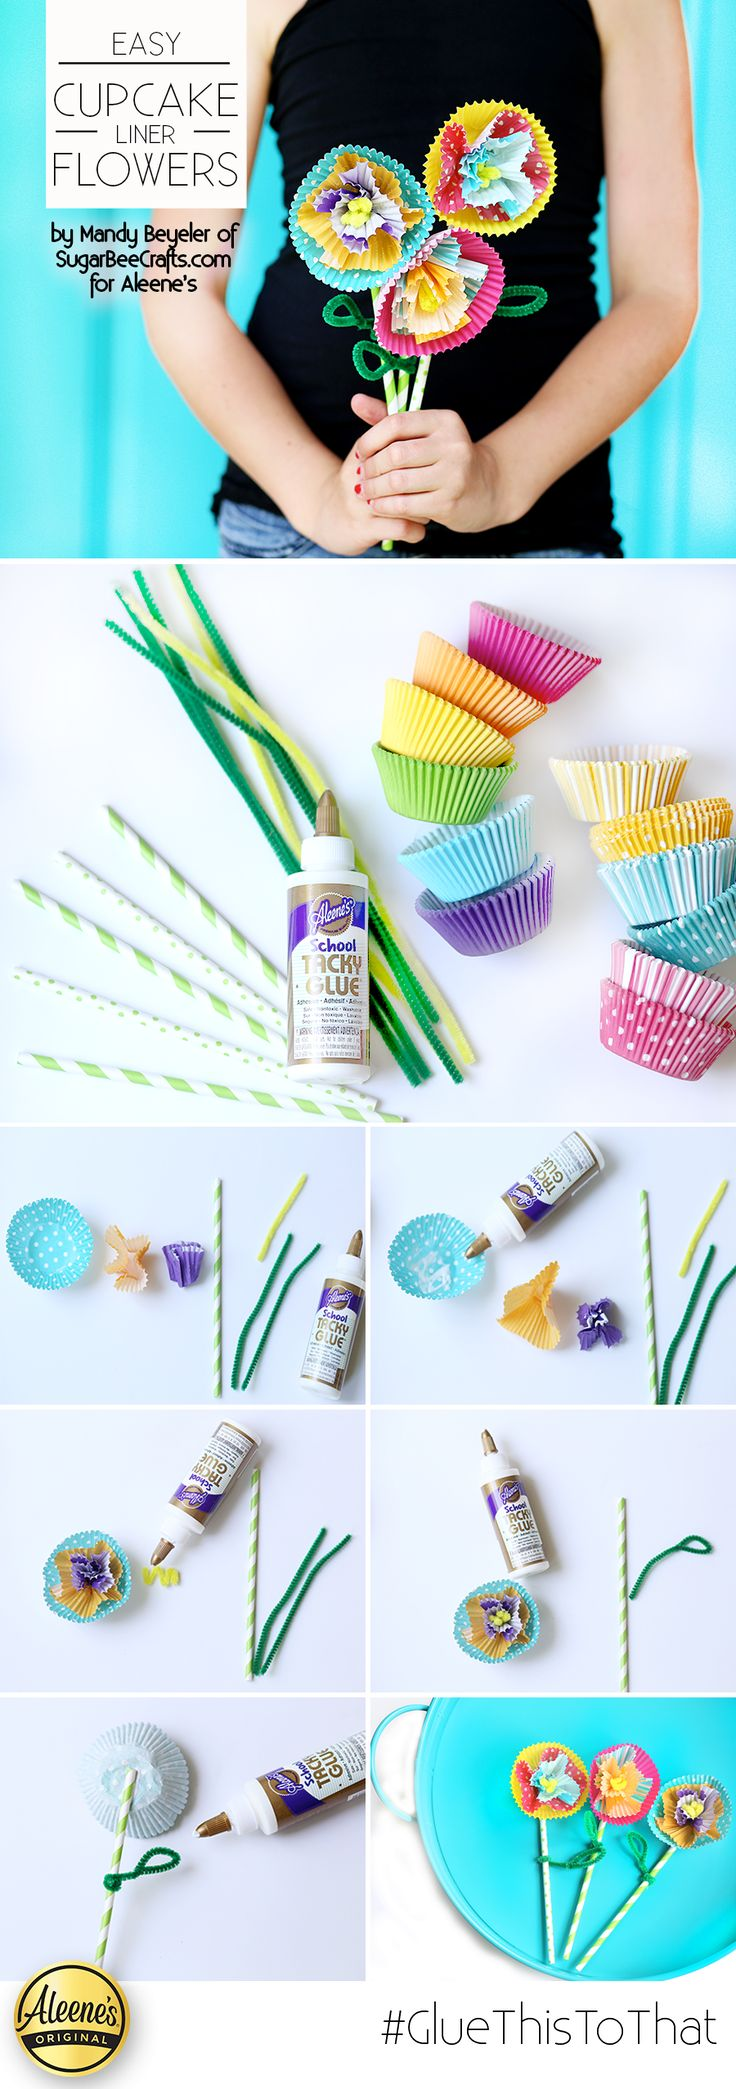 Easy Cupcake Liner Flowers - #gluethistothat - - step-by-step instructions - love this fun project!!